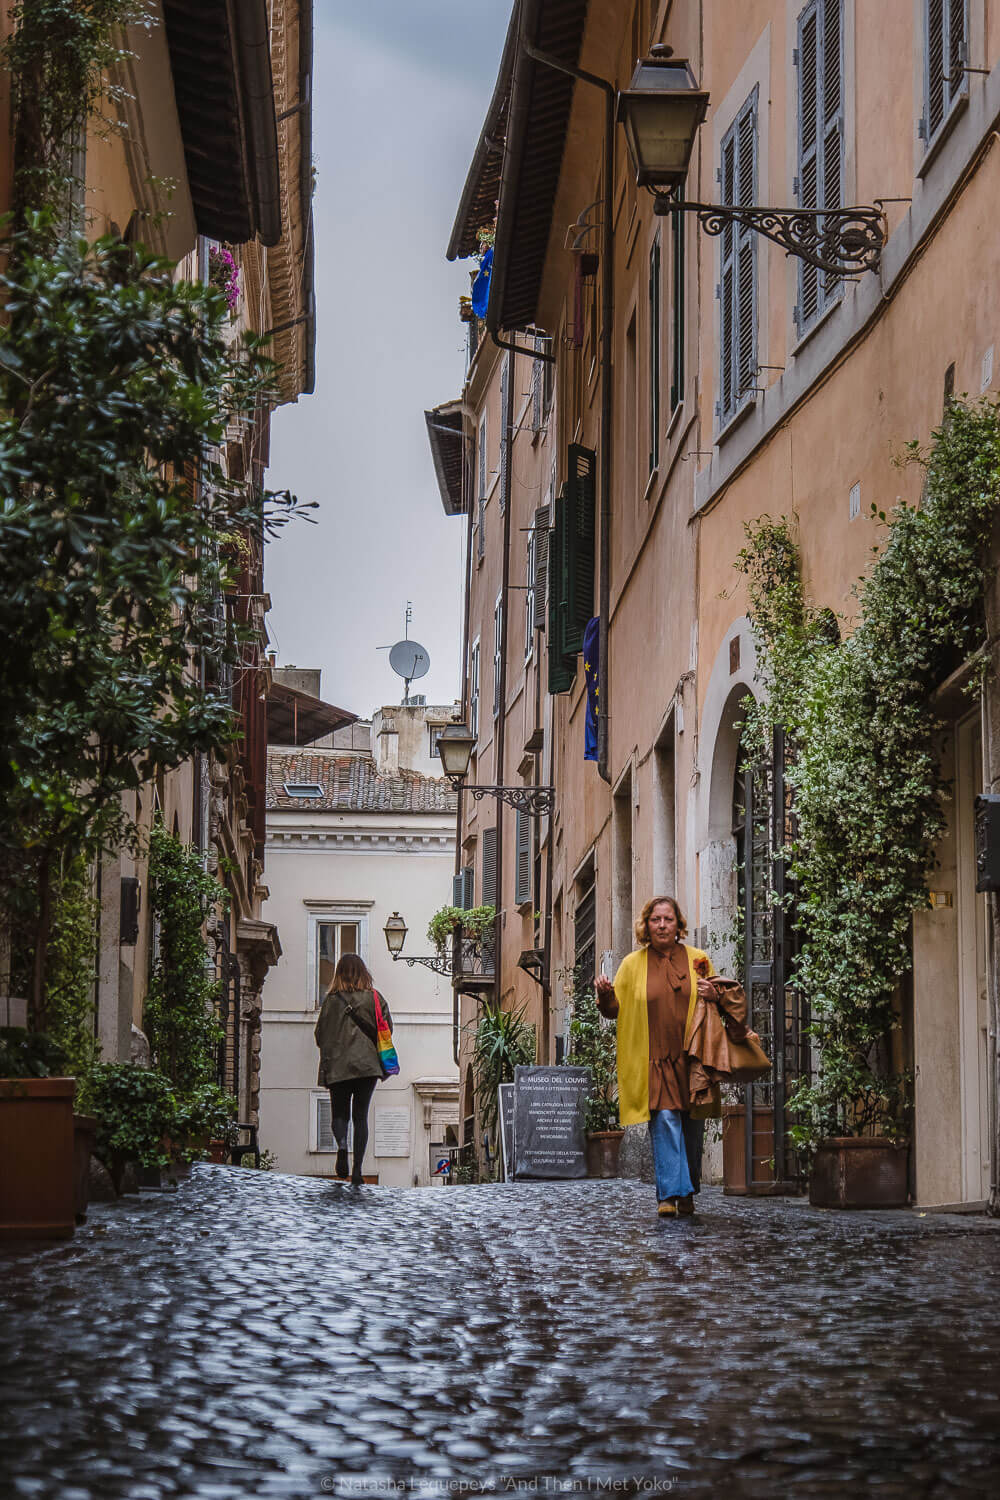 """The streets of the Jewish Ghetto, Rome. Travel photography and guide by © Natasha Lequepeys for """"And Then I Met Yoko"""". #rome #jewishghettorome #italy #fujifilm #travelphotography"""